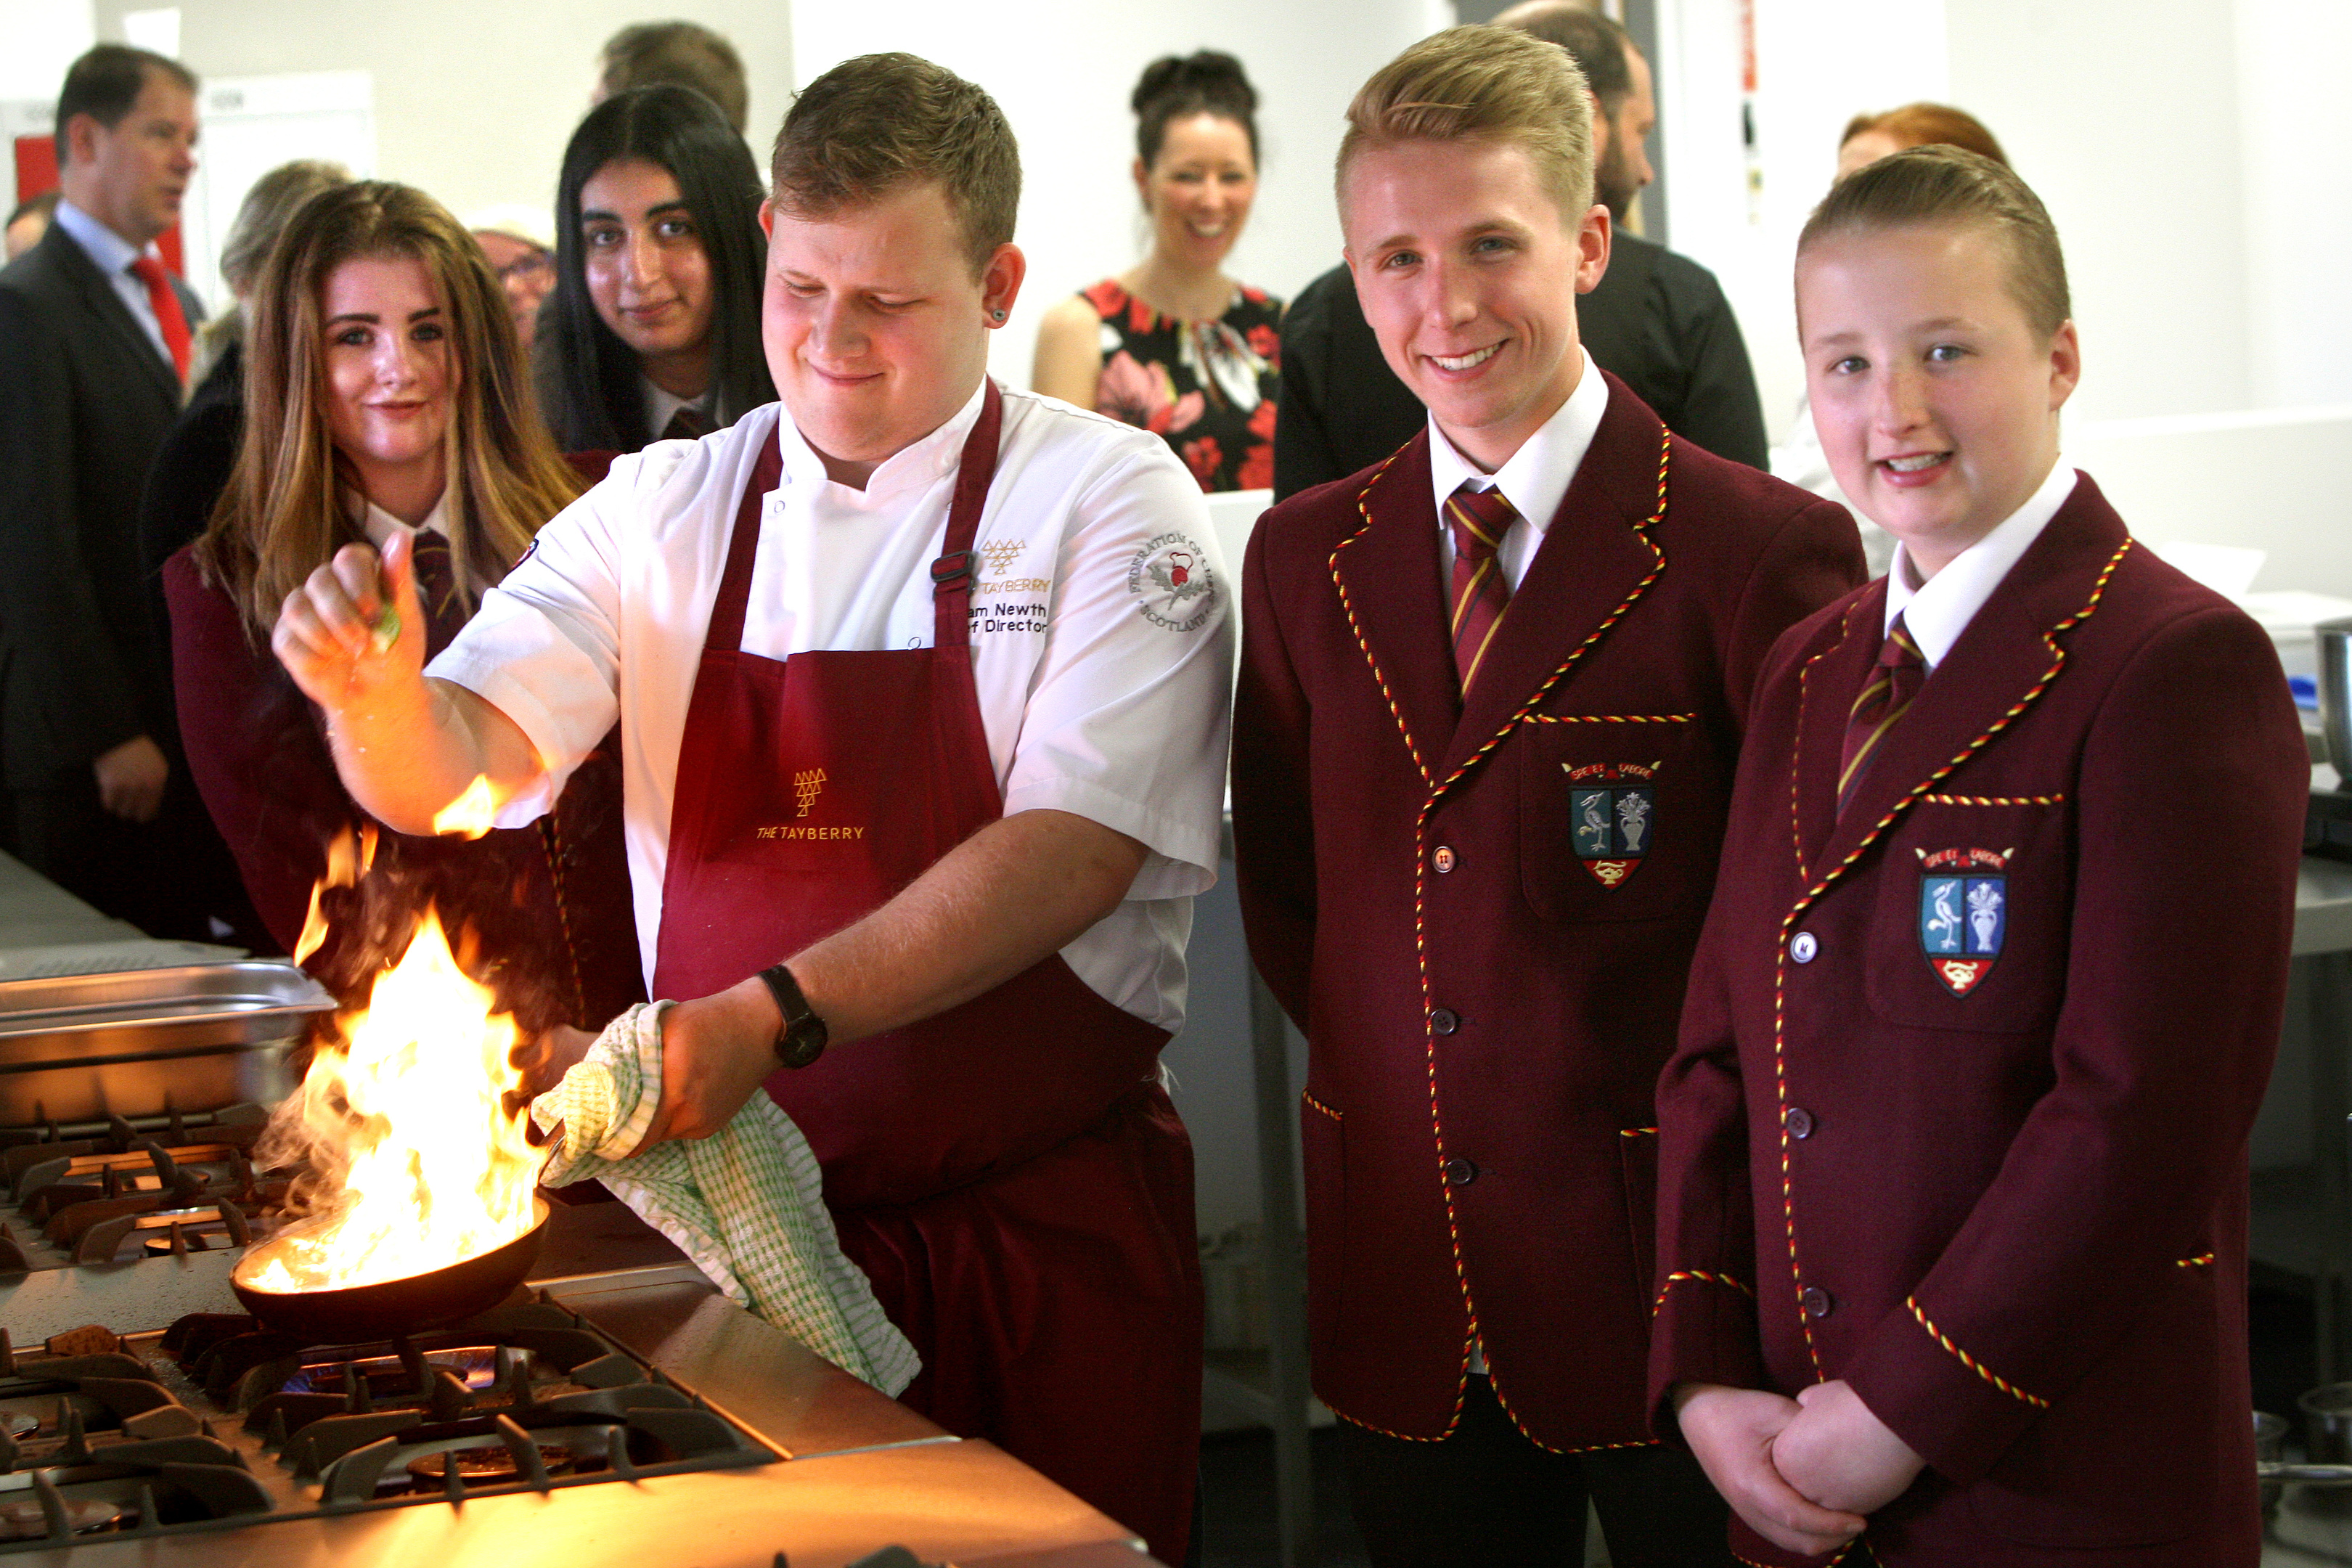 Top Dundee chefs will be helping cook up a career menu for secondary pupils in Dundee.